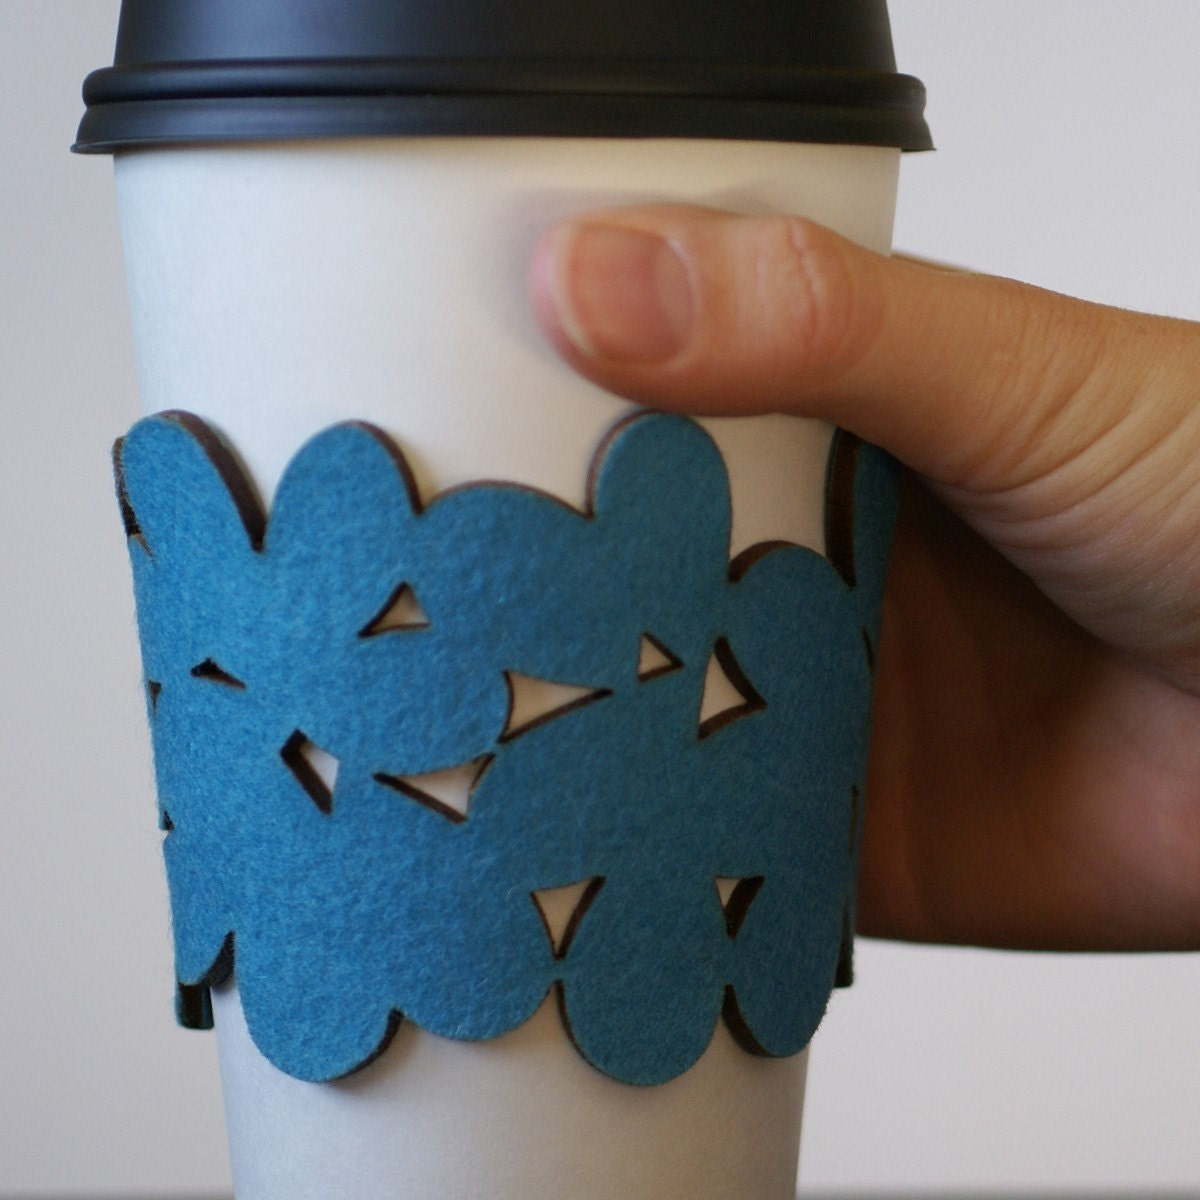 cozy/cuff SNAP - bracelet/reusable cup sleeve in turquoise blue wool felt - size small - free shipping